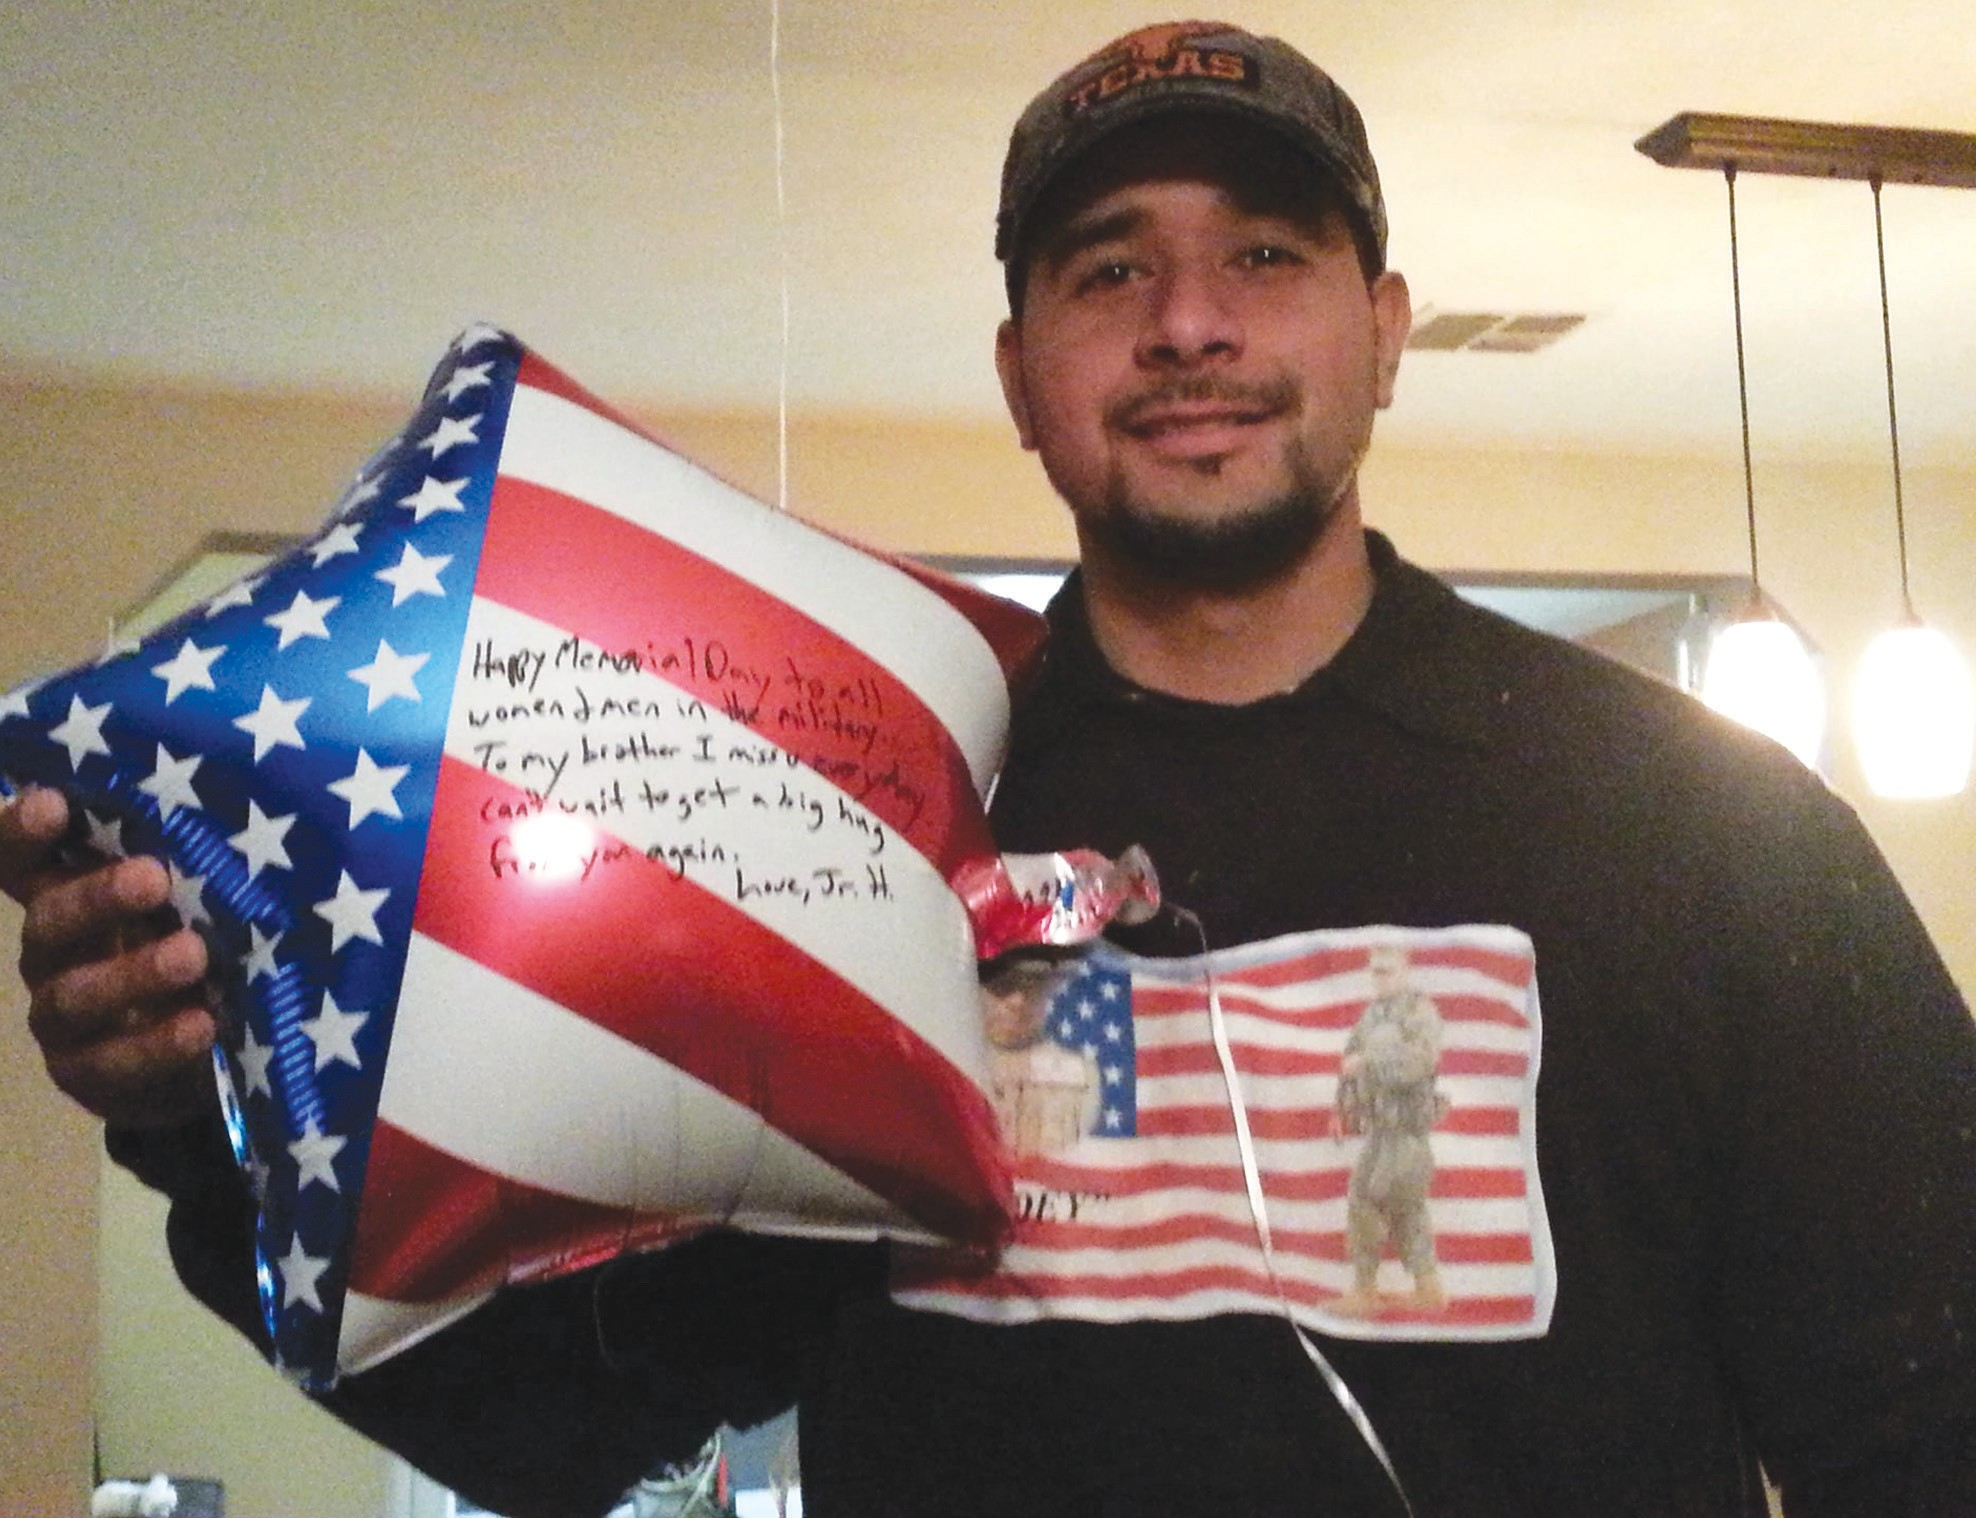 Jr. Heritage and his family released balloons on Memorial Day, in honor of Sgt. Jose Luis Saenz III.